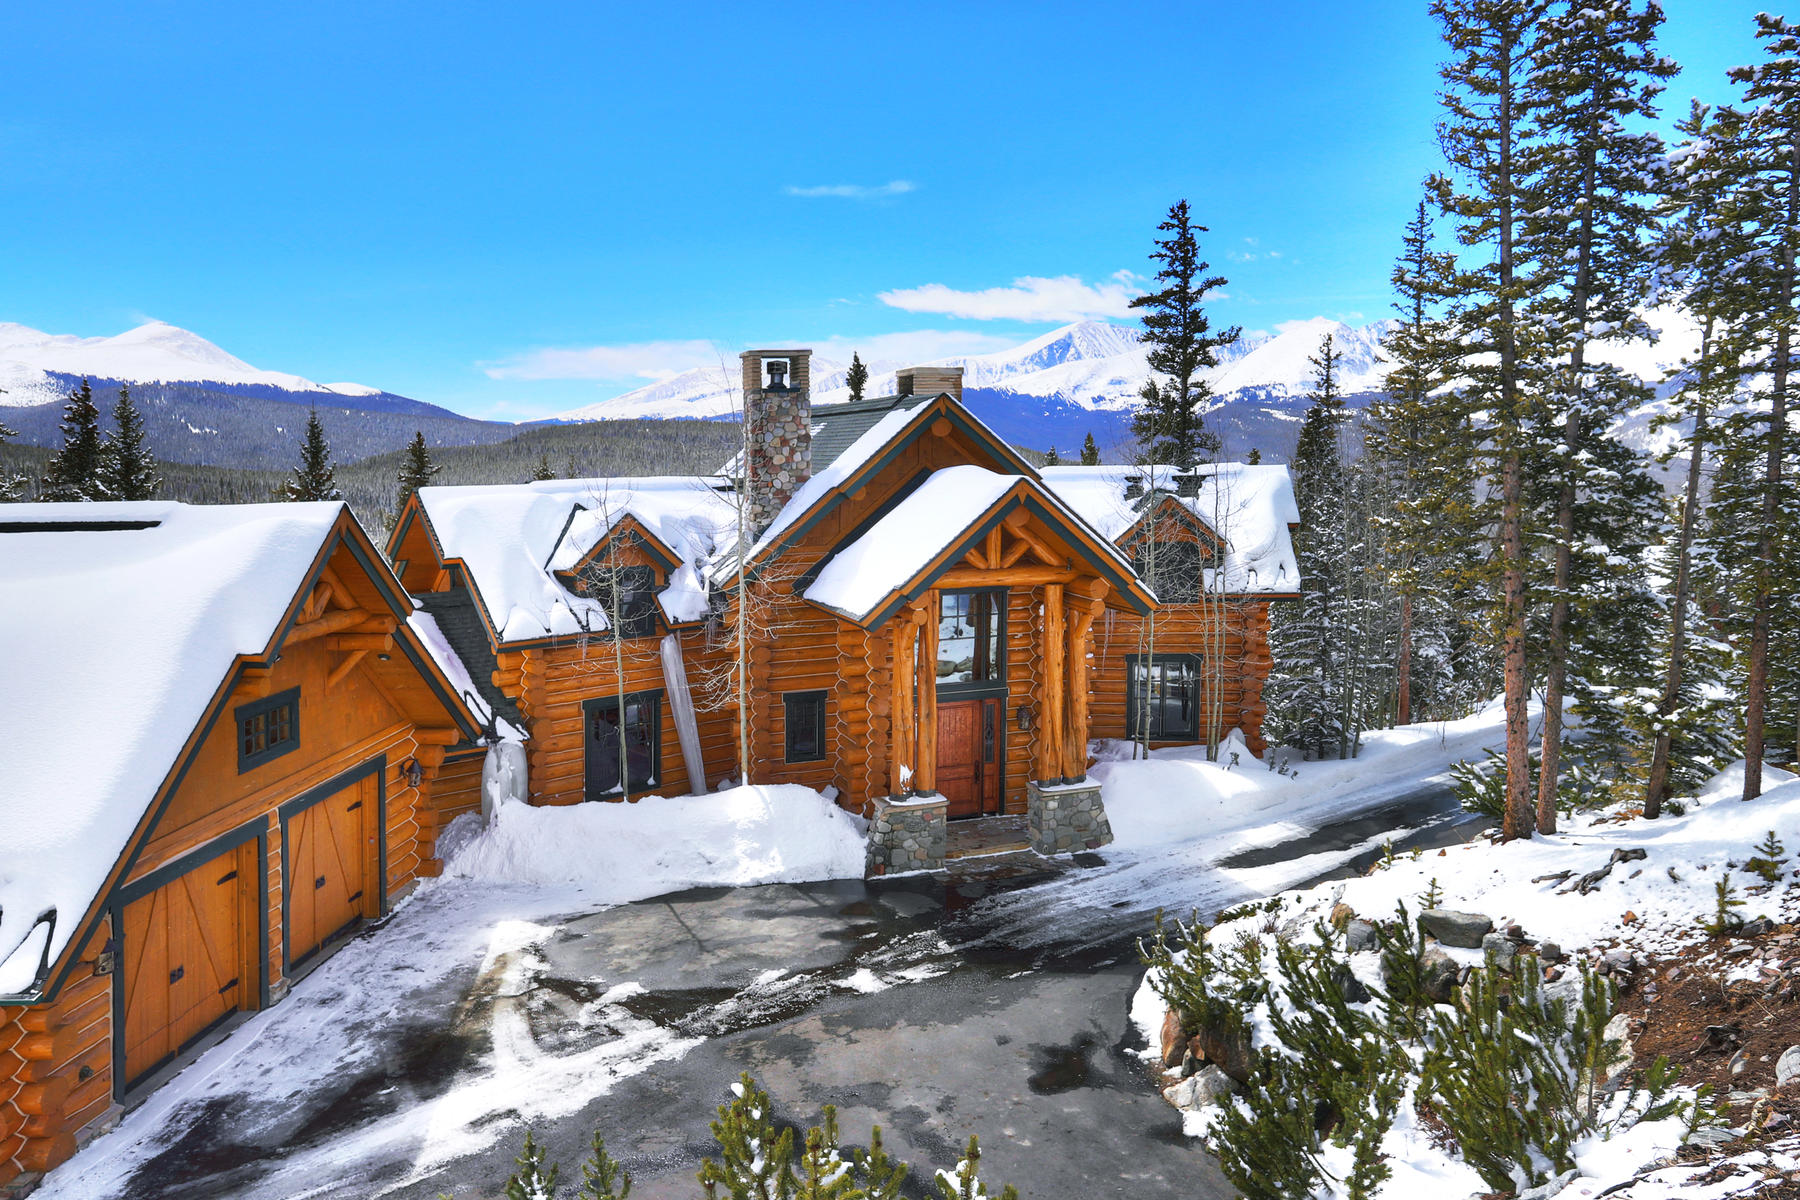 Single Family Home for Active at 831 Miners View 831 MIners View Road Breckenridge, Colorado 80424 United States